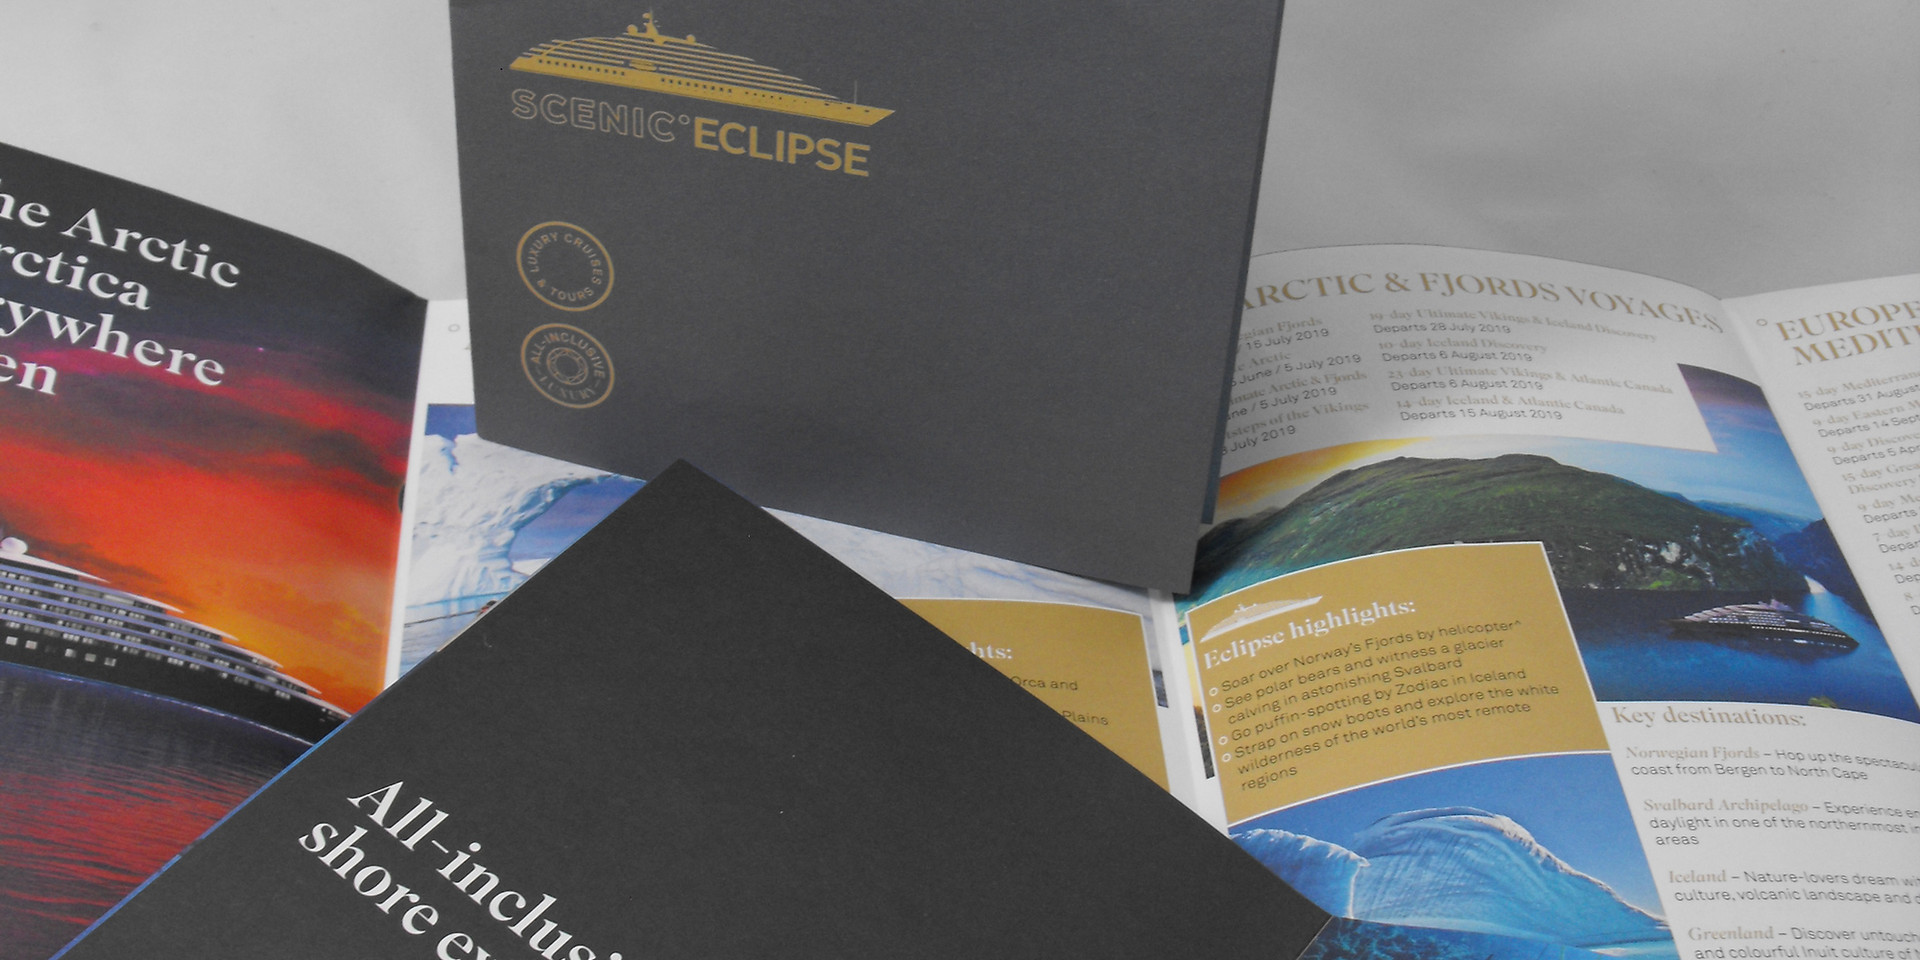 Scenic - Eclipse folio